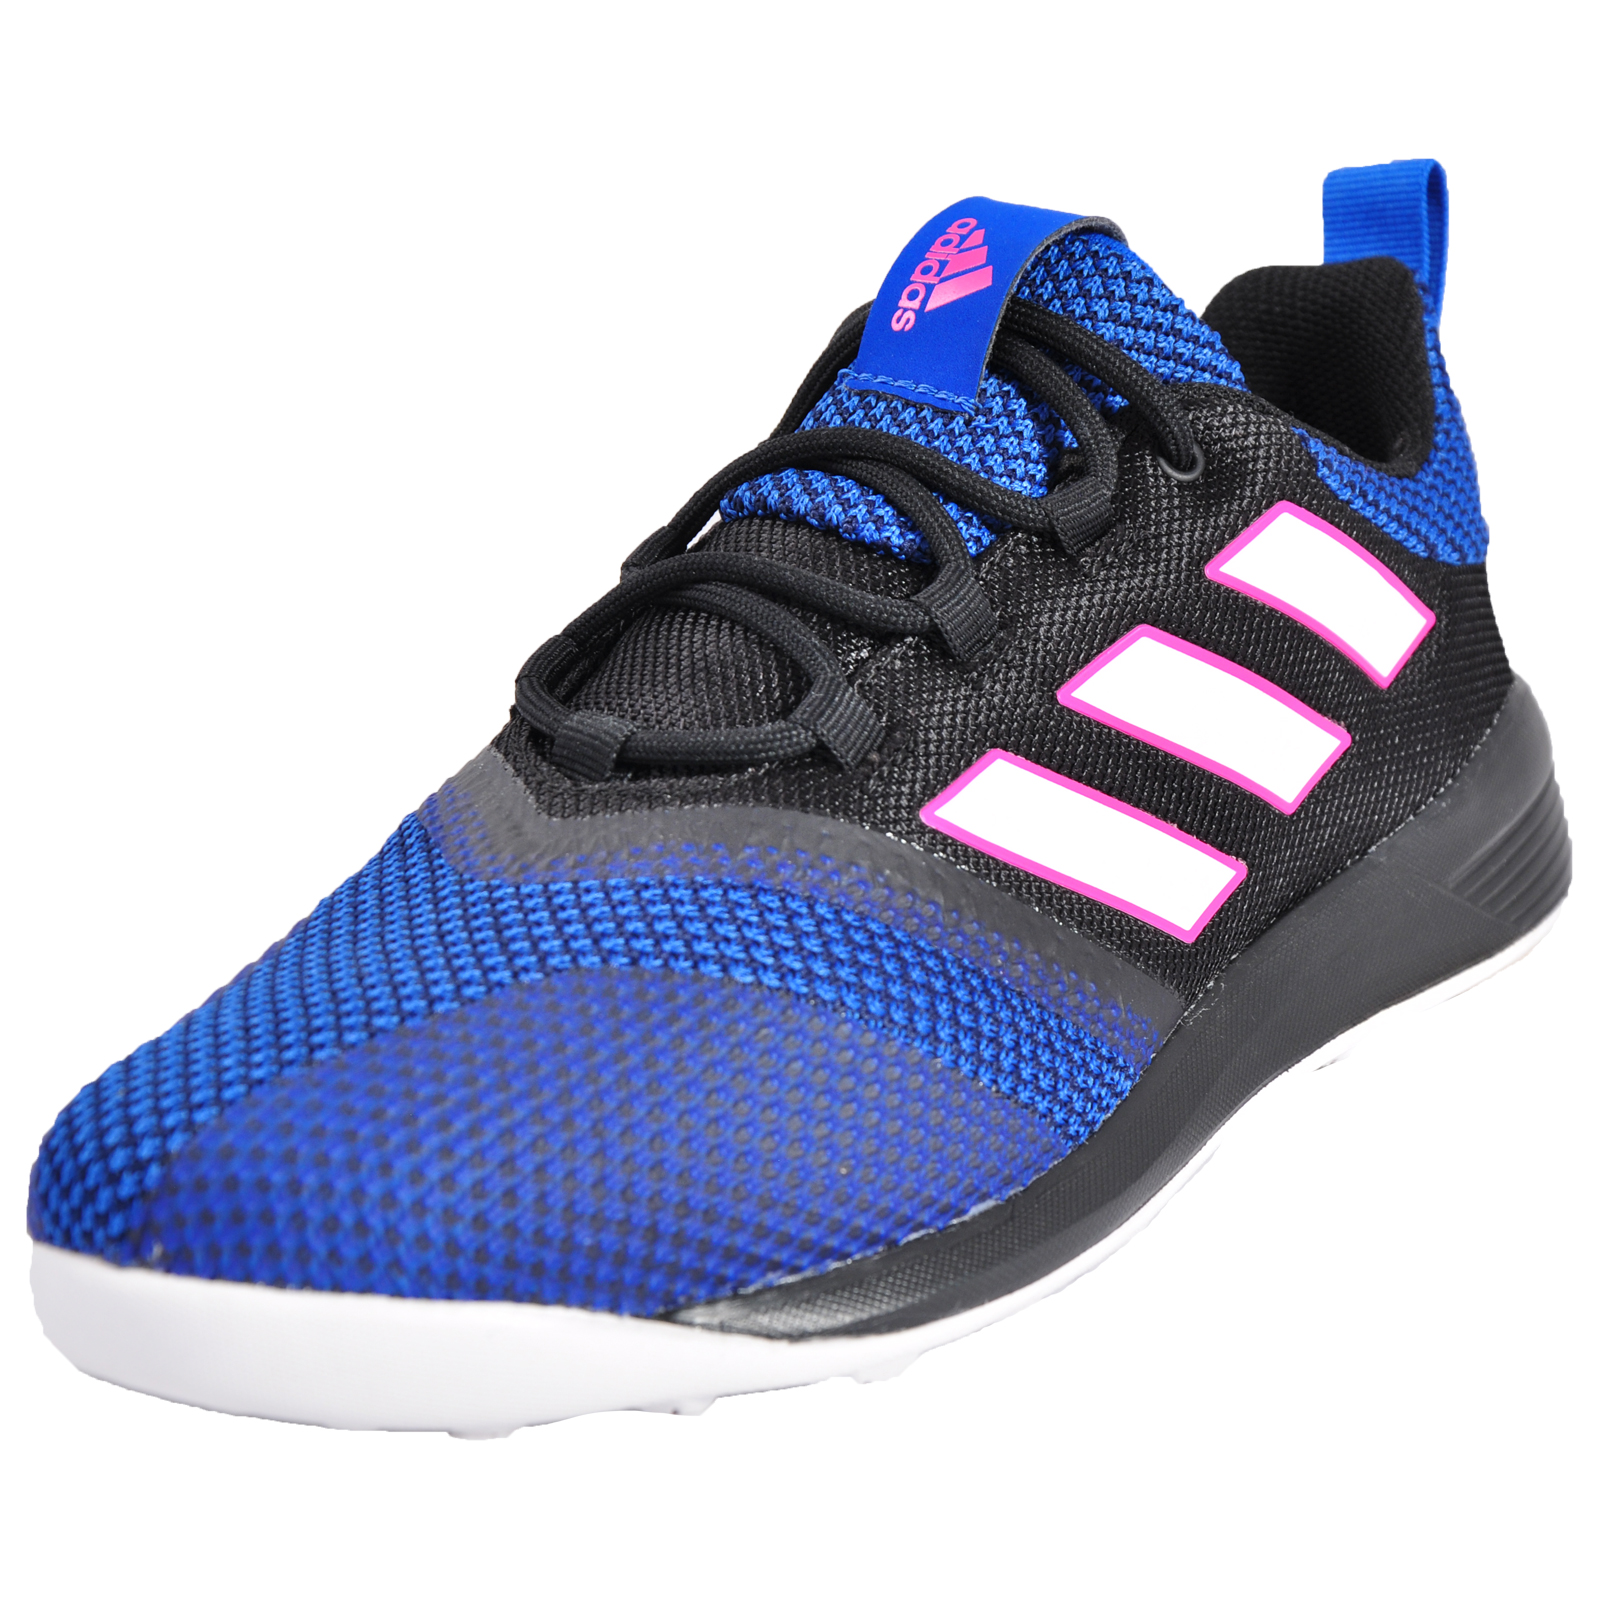 newest eb5dc 5d601 Details about Adidas Ace Tango 17.2 TR Men's Pro Football Court Fitness Gym  Trainers